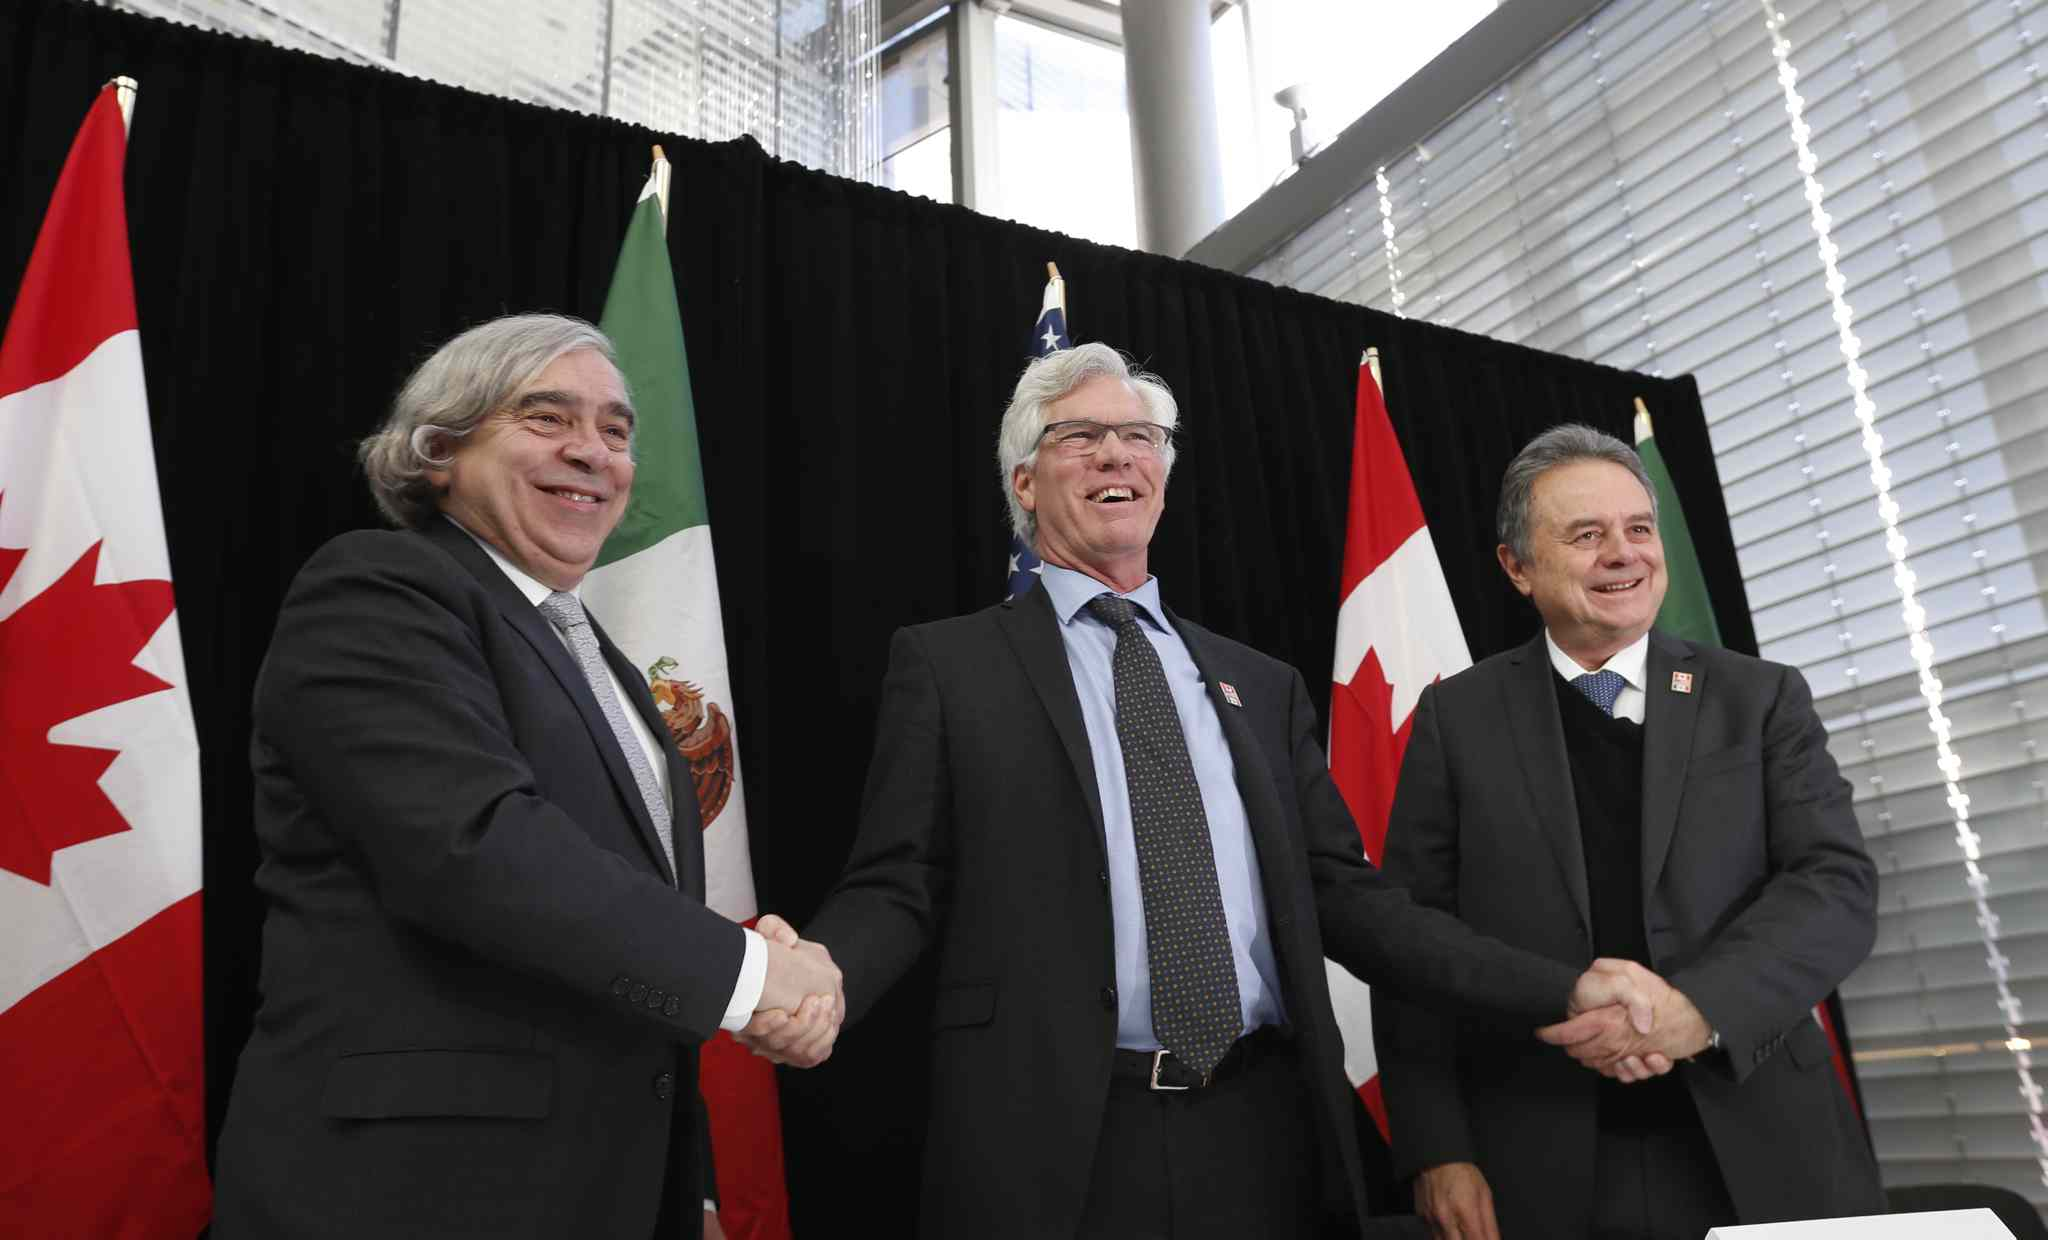 Jim Carr, Canada's Minister of Natural Resources (centre), with  Mexico's Secretary of Energy Pedro Joaquín Coldwell (right) and the United States Secretary of Energy, Dr. Ernest Moniz in Winnipeg for a North American Energy Ministers Meeting.